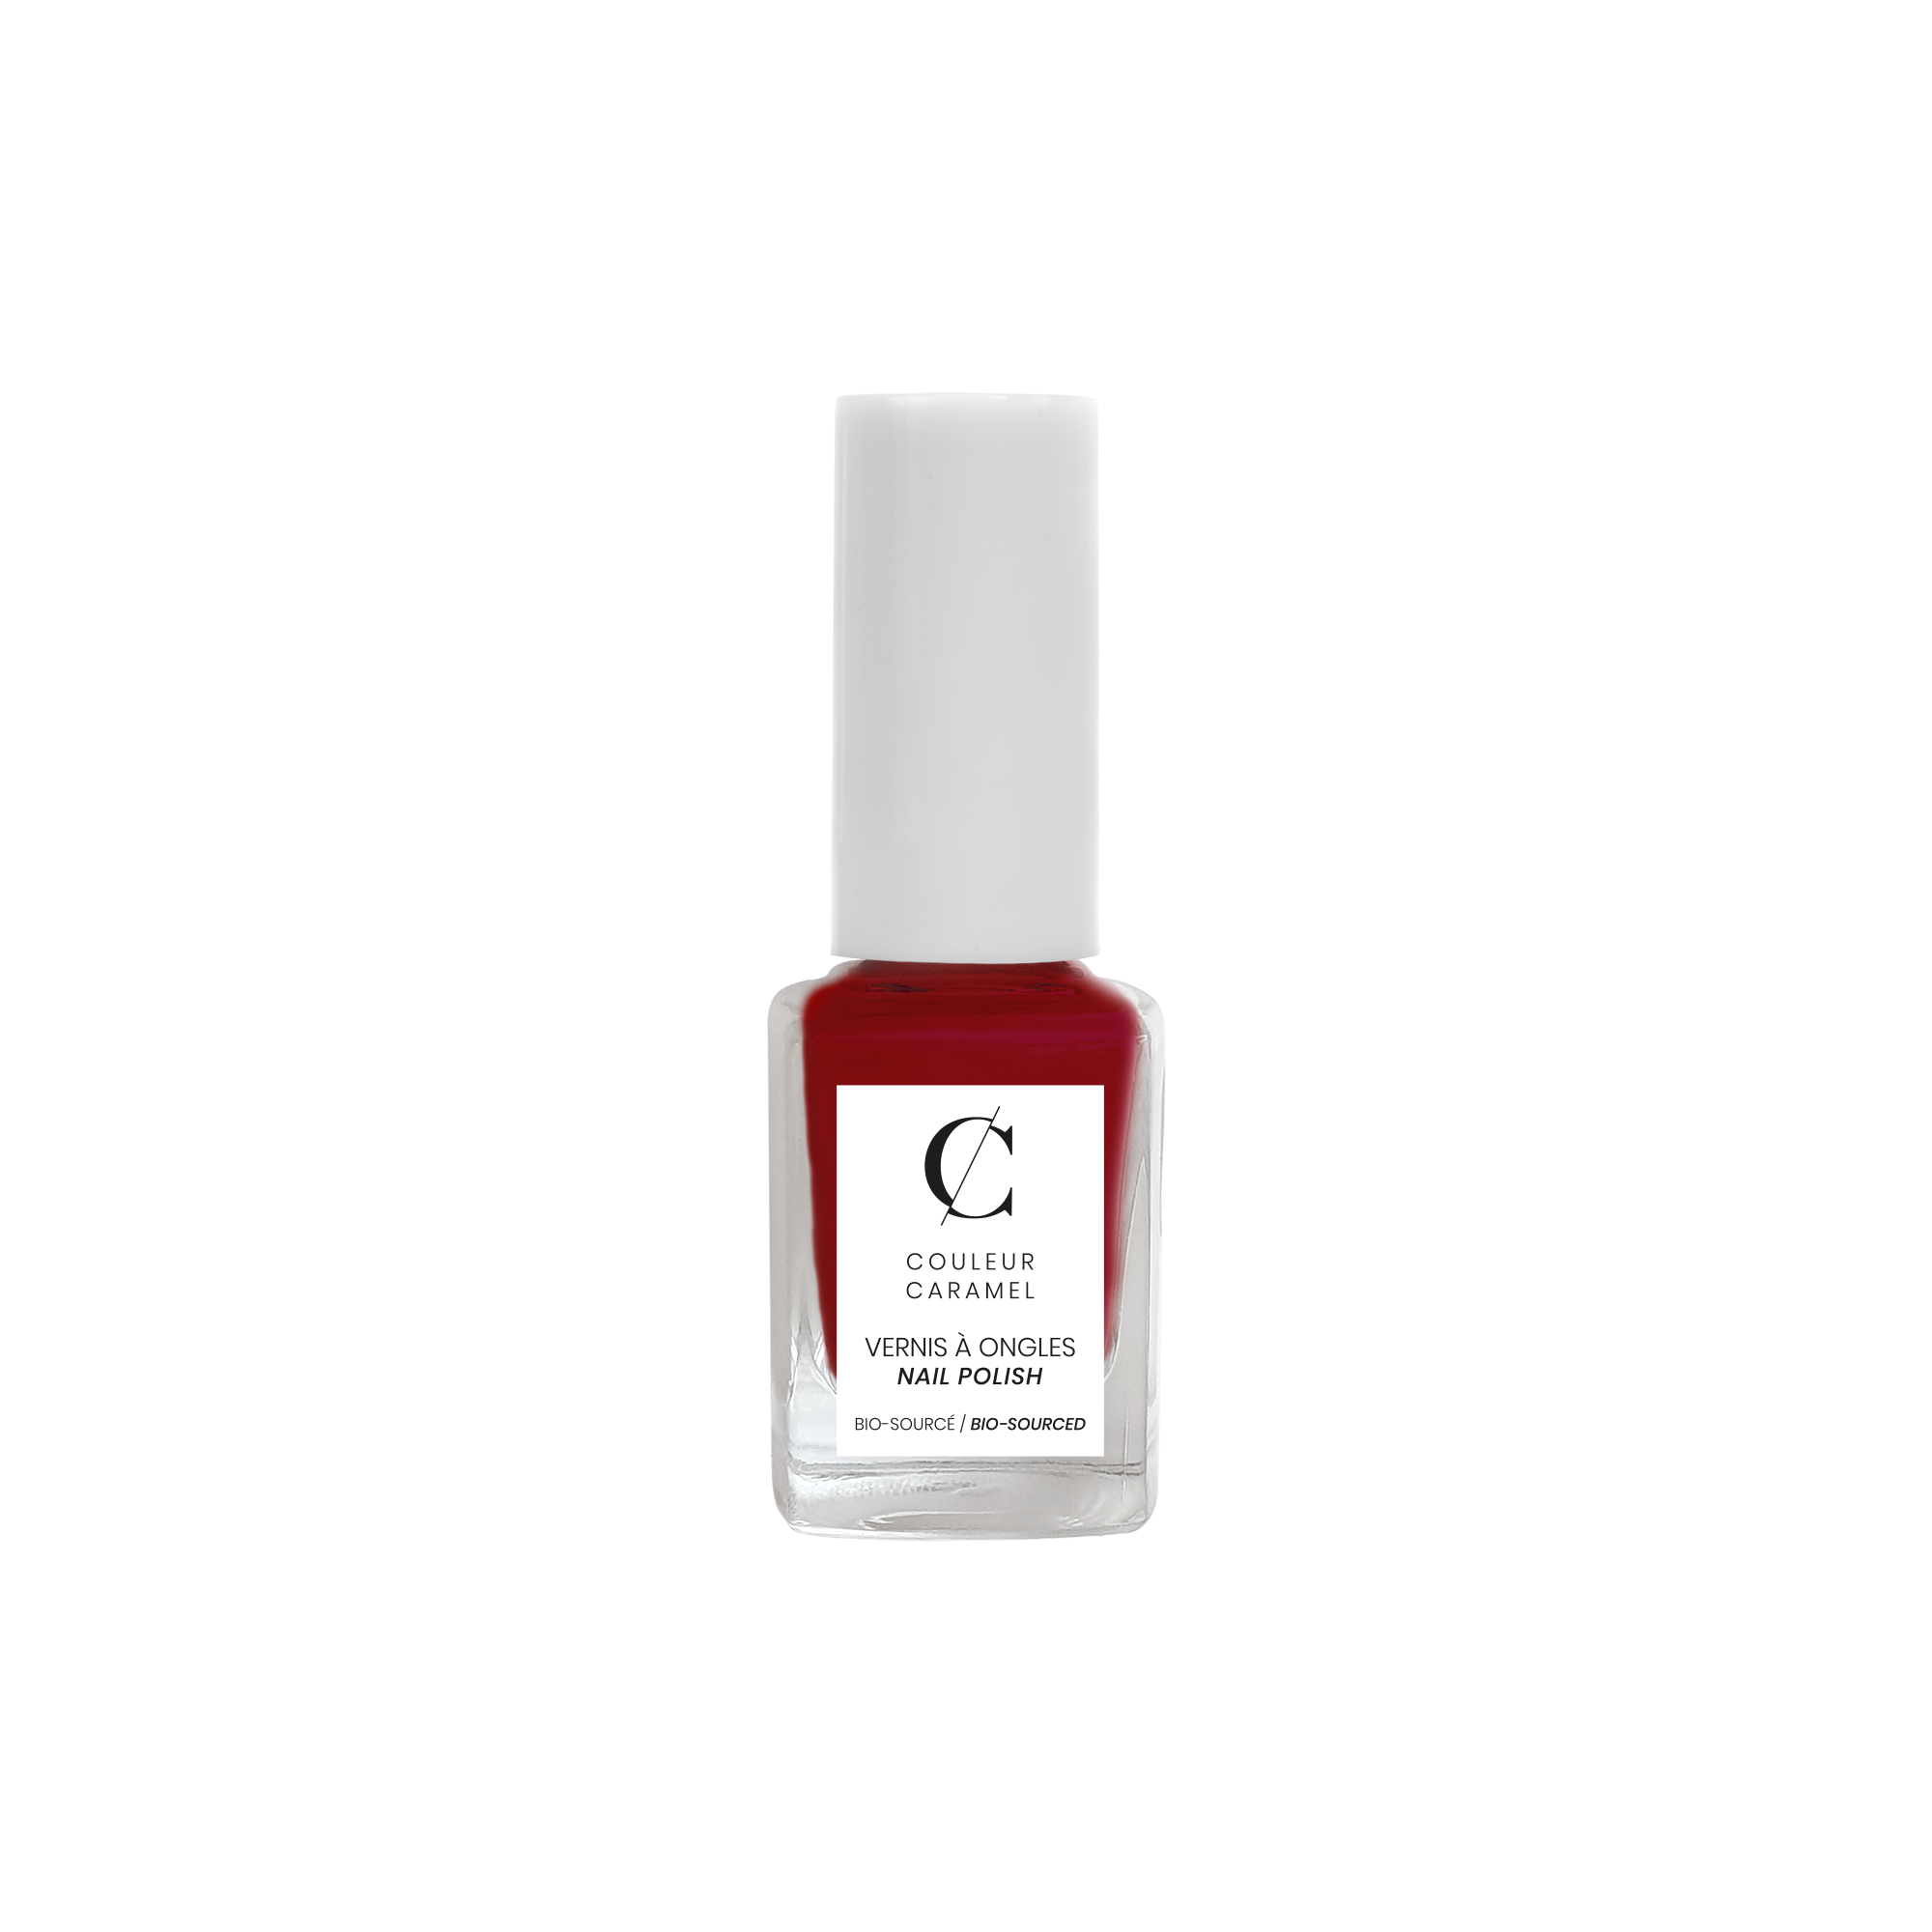 VERNIS À ONGLES N 42 rouge poinsettia